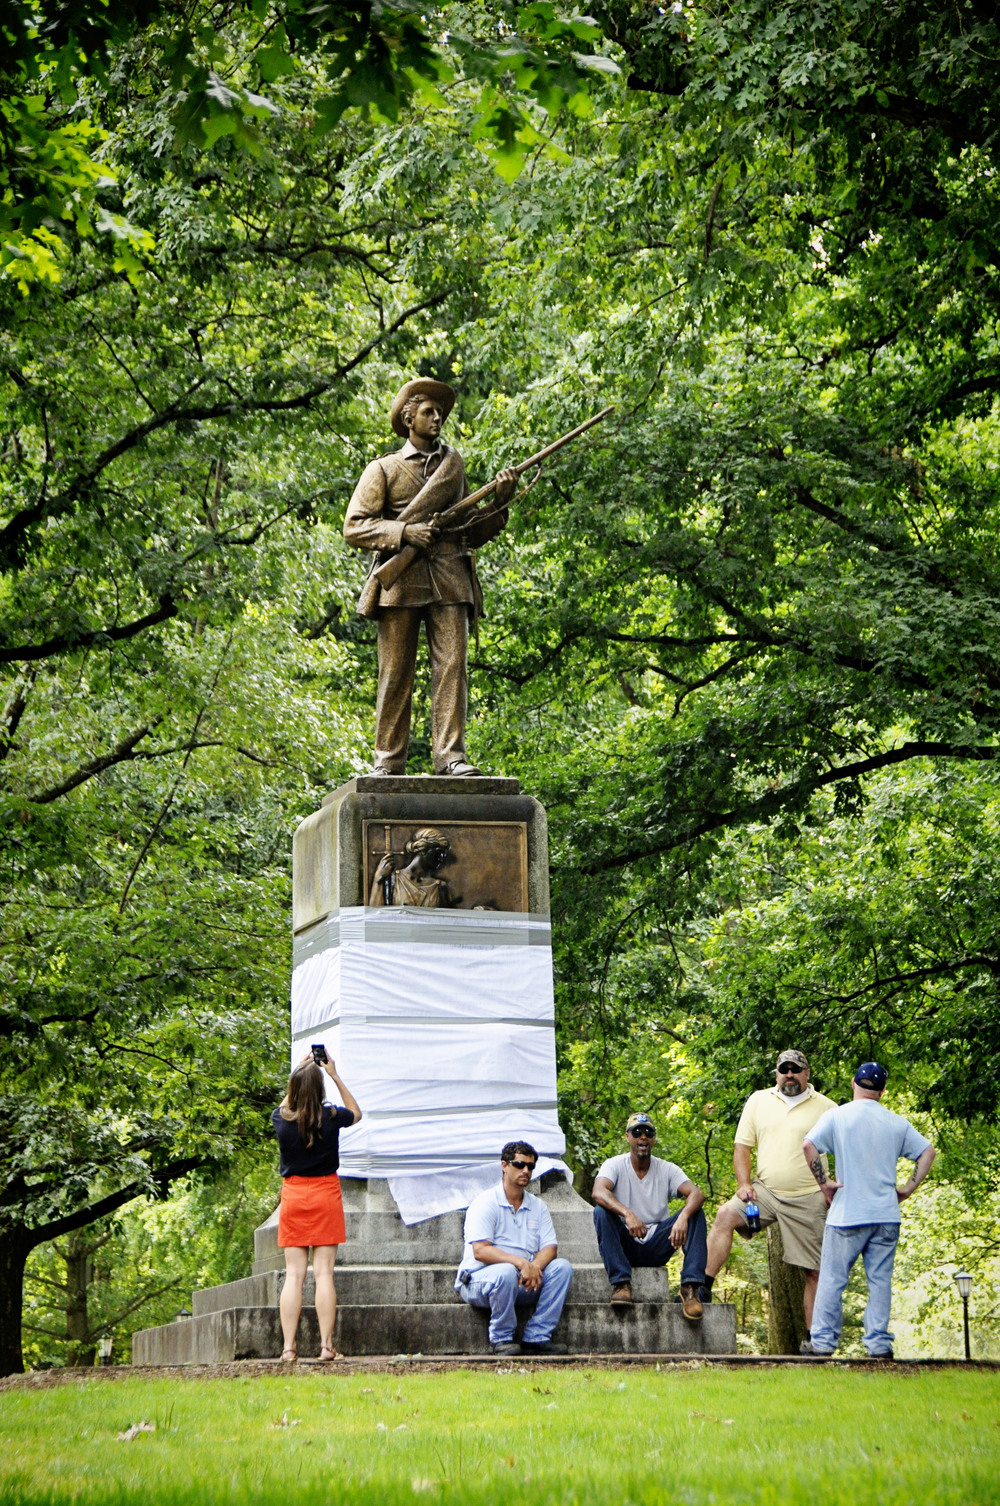 University of North Carolina at Chapel Hill Silent Sam controversial statue of confederate soldier dubbed Silent Sam.